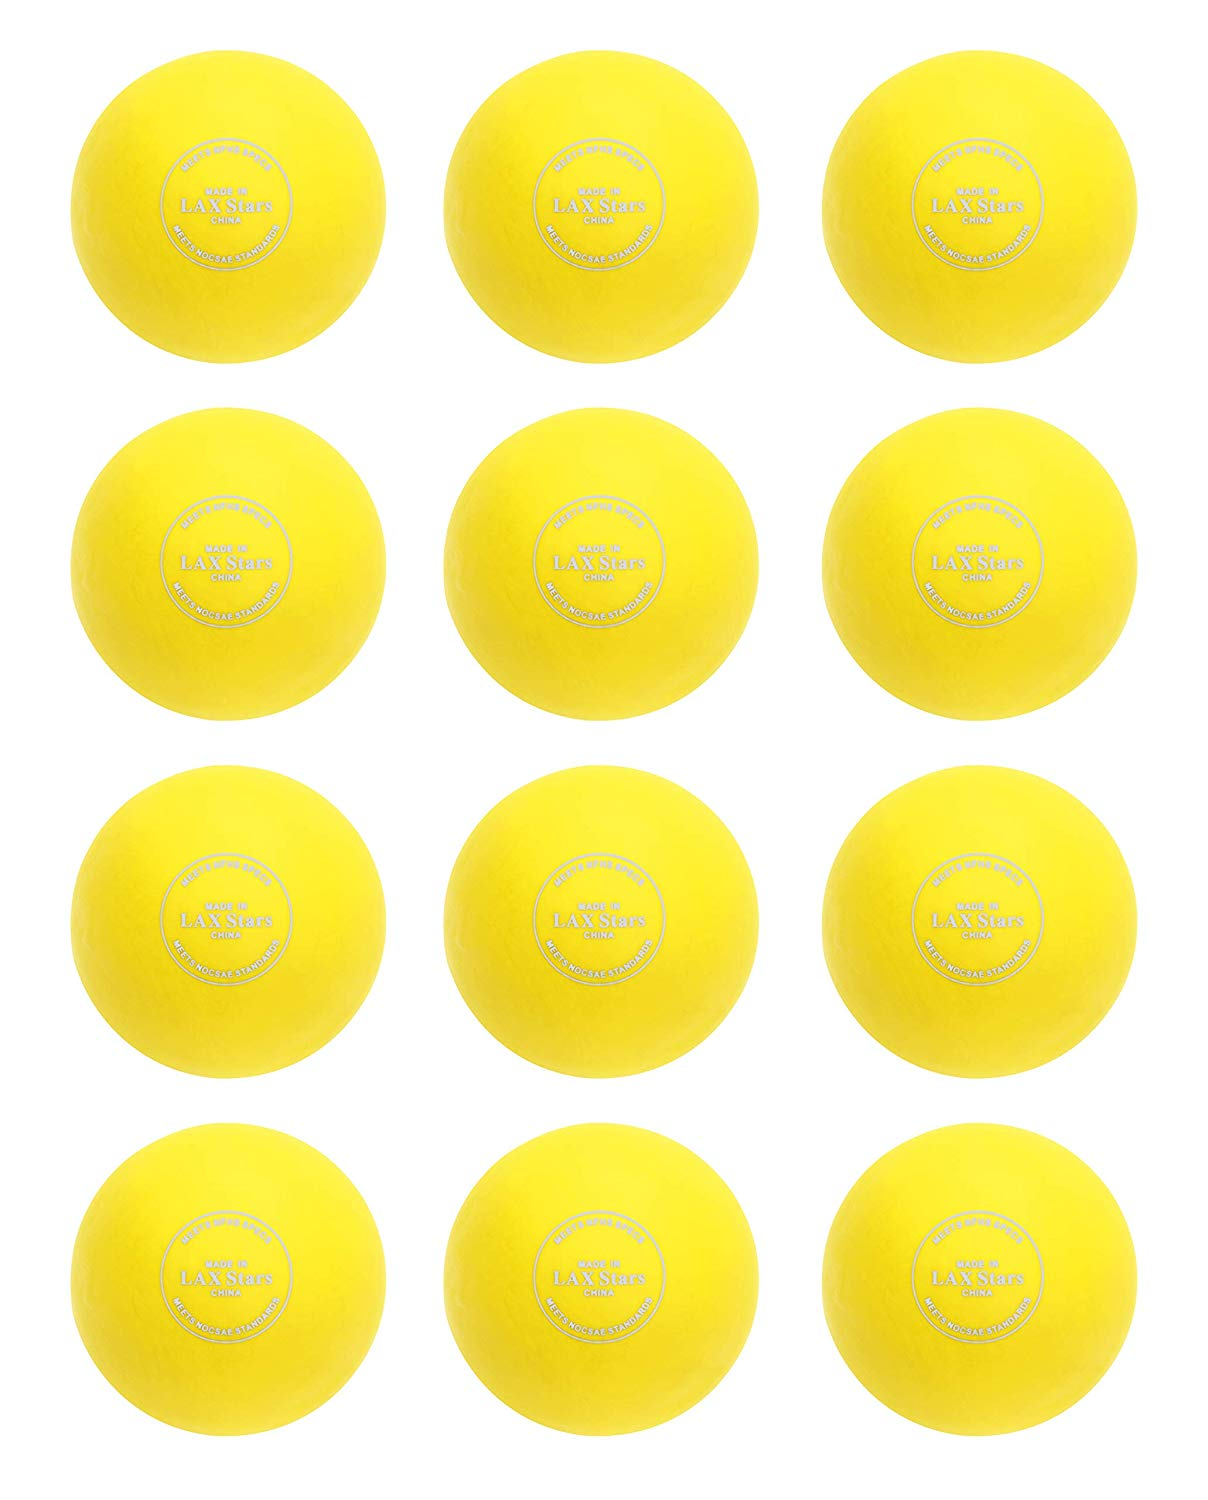 LAX Stars Lacrosse Balls 12 Pack - White, Orange, and Yellow No Grease